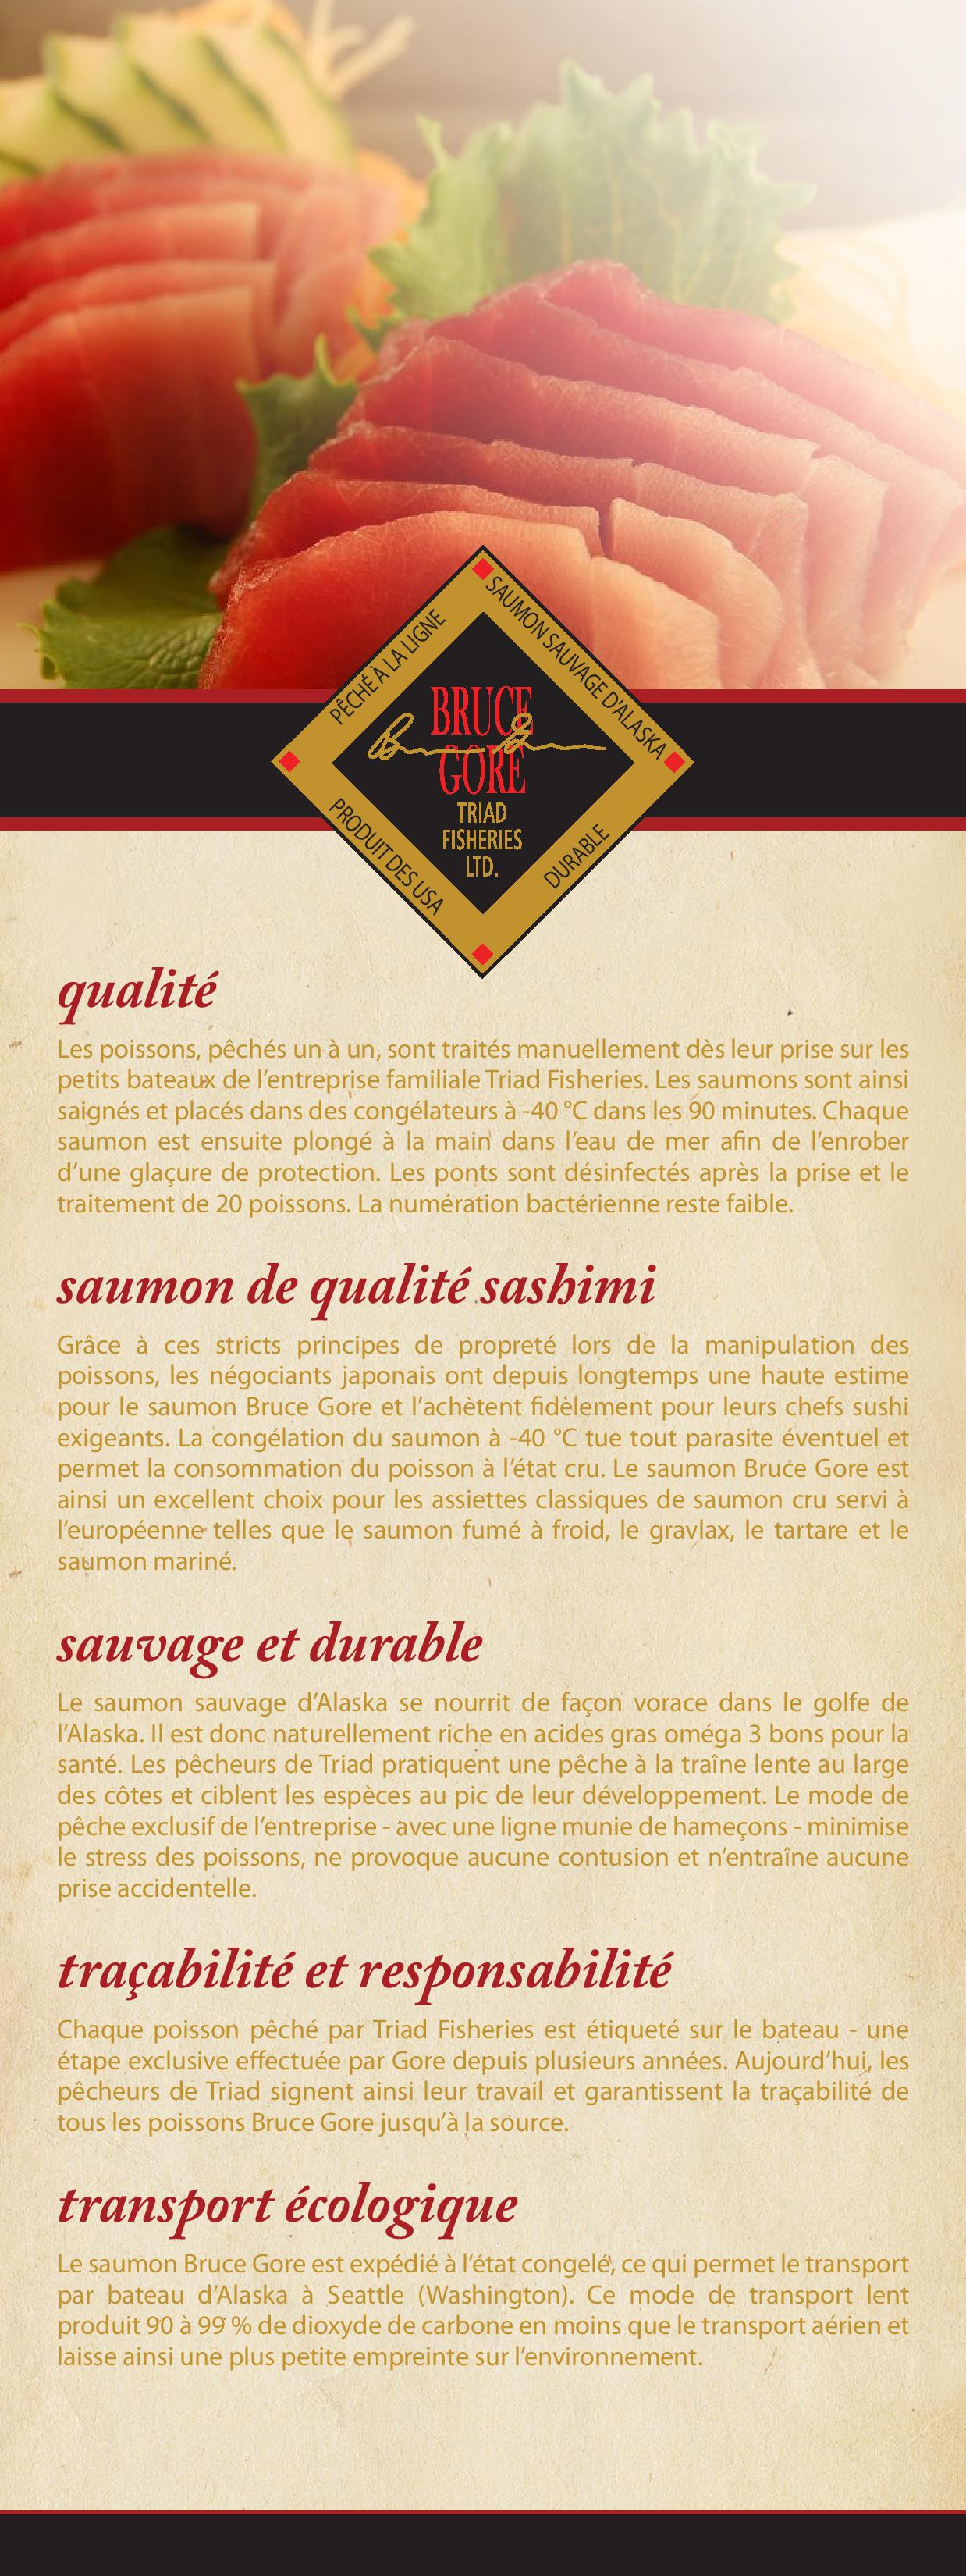 French brochure